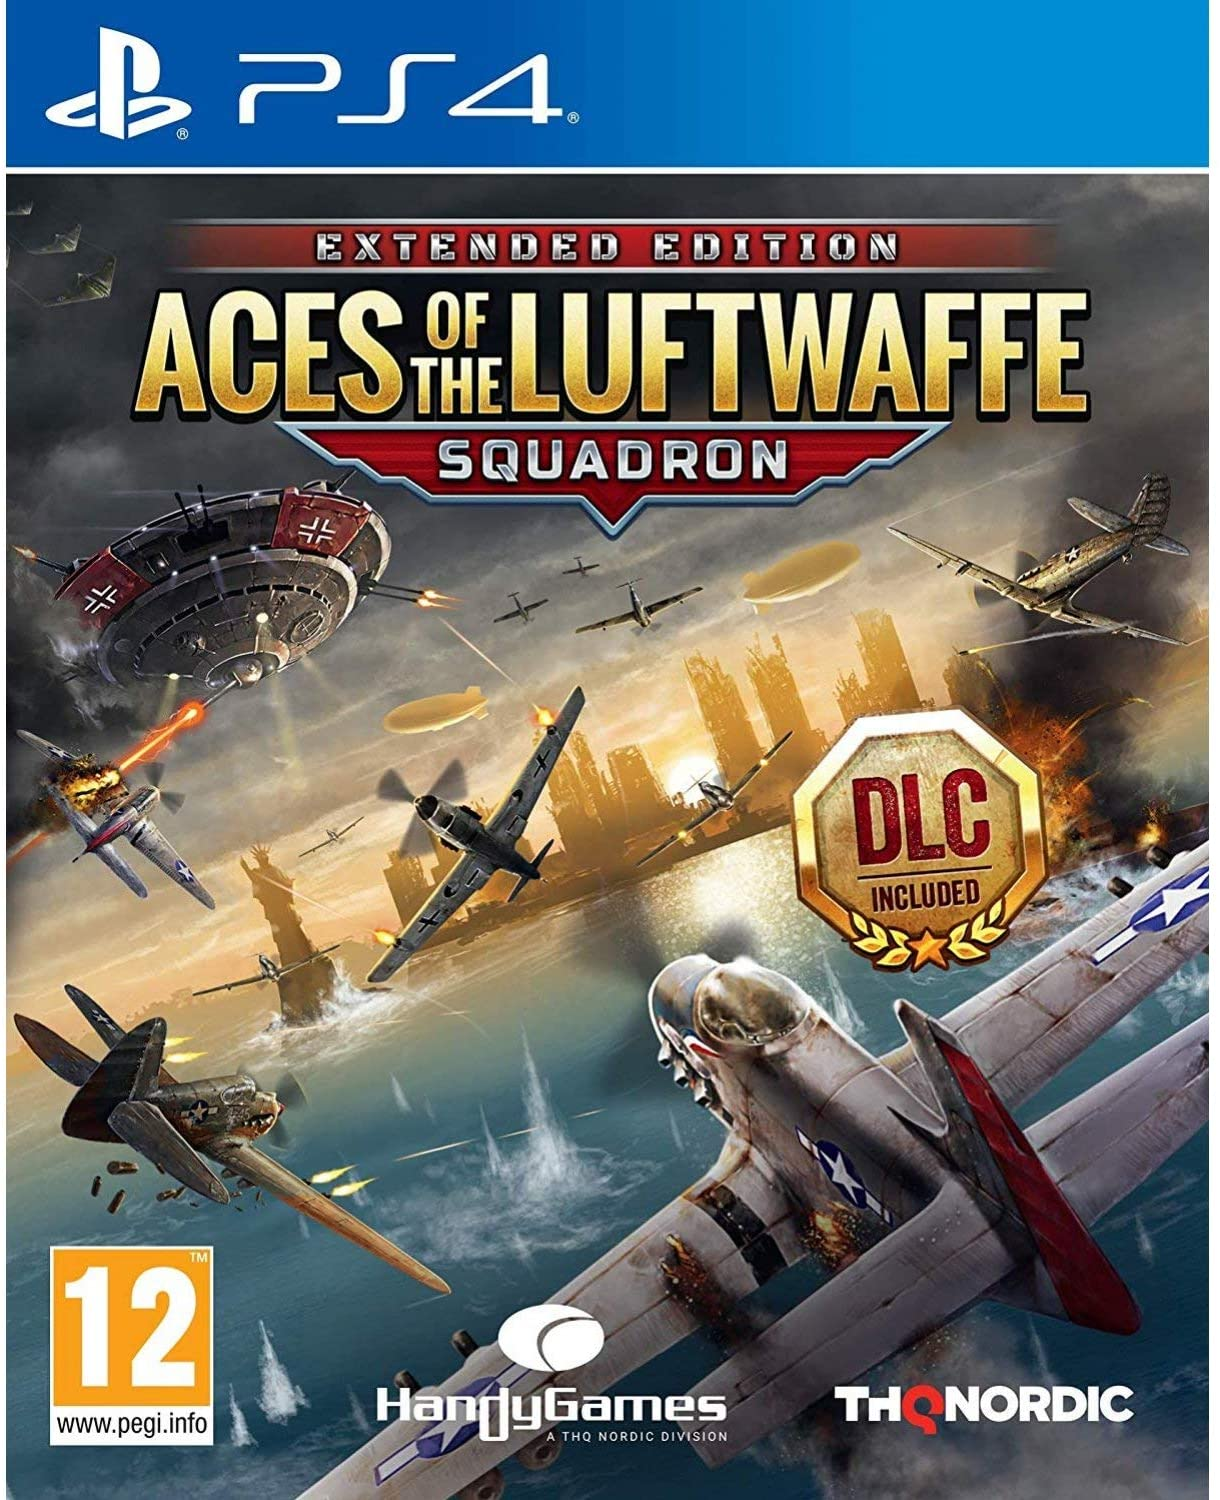 Aces of Luftwaffe Squadron Edition